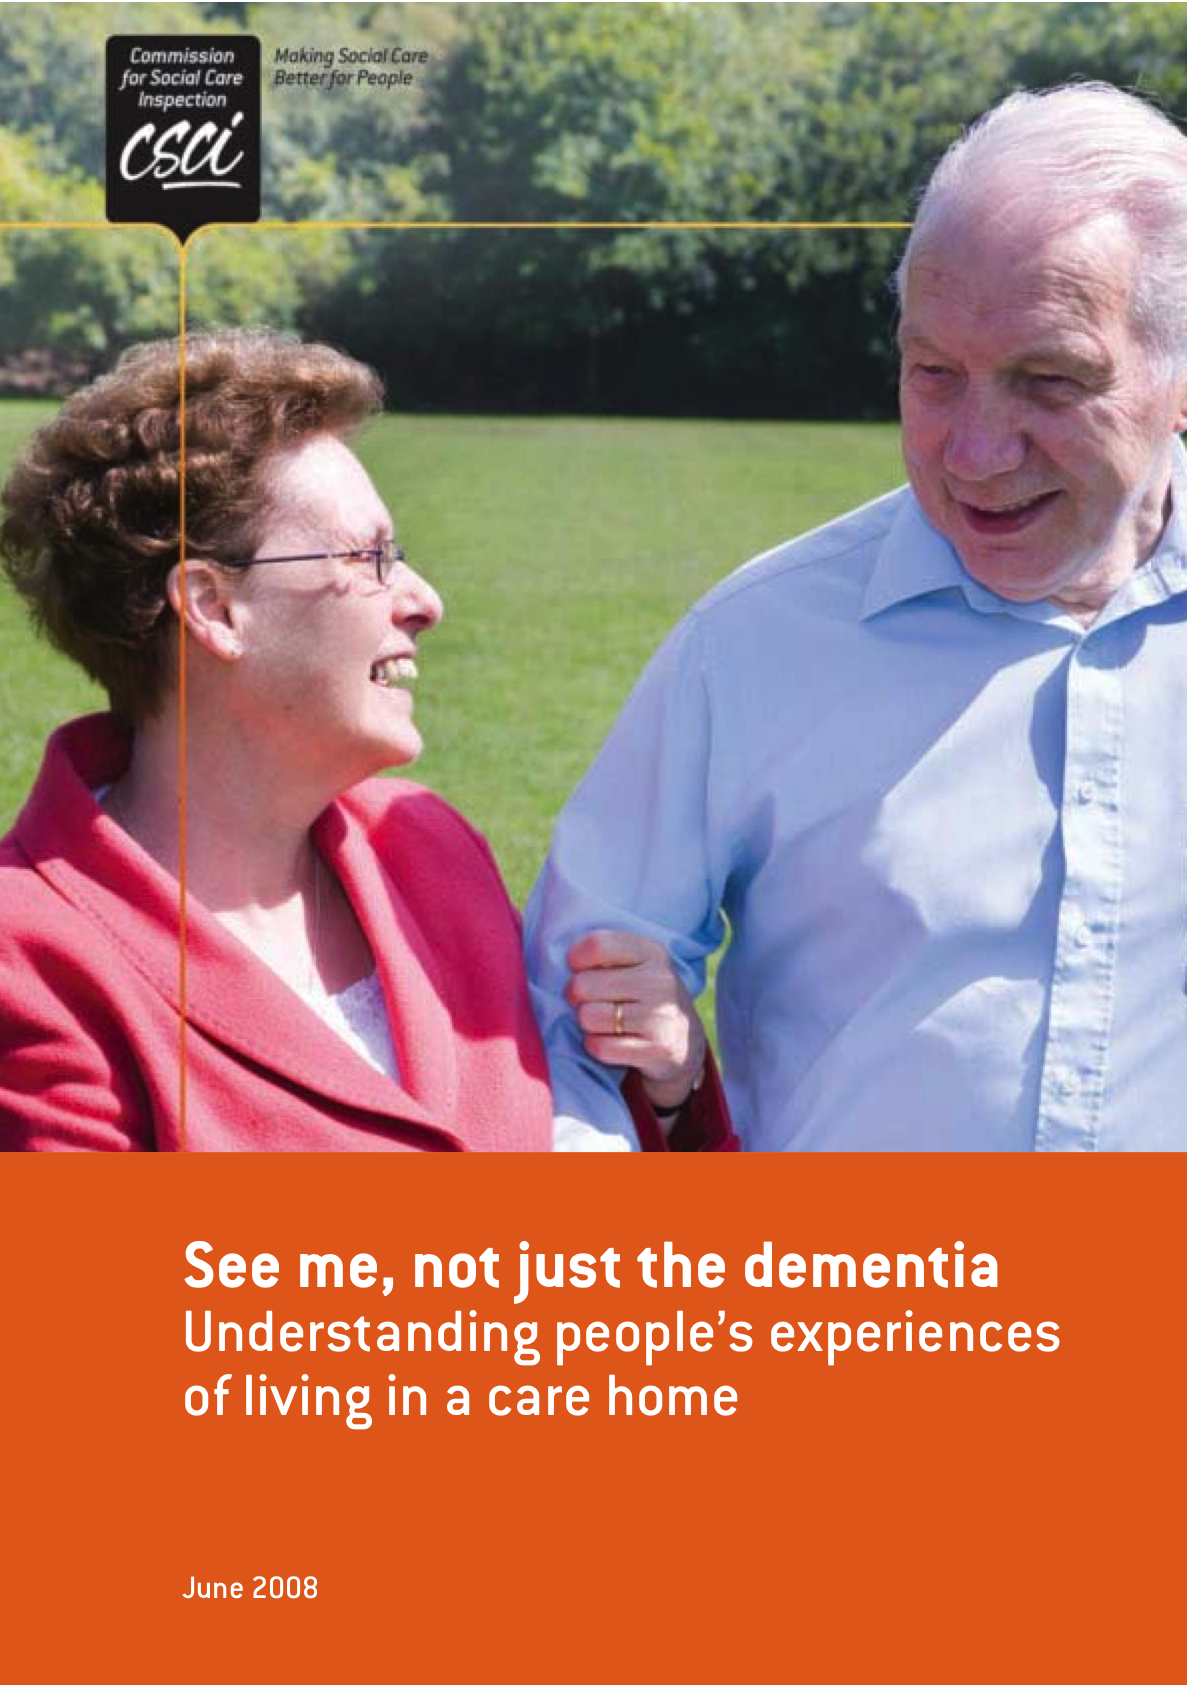 See me, not just the dementia